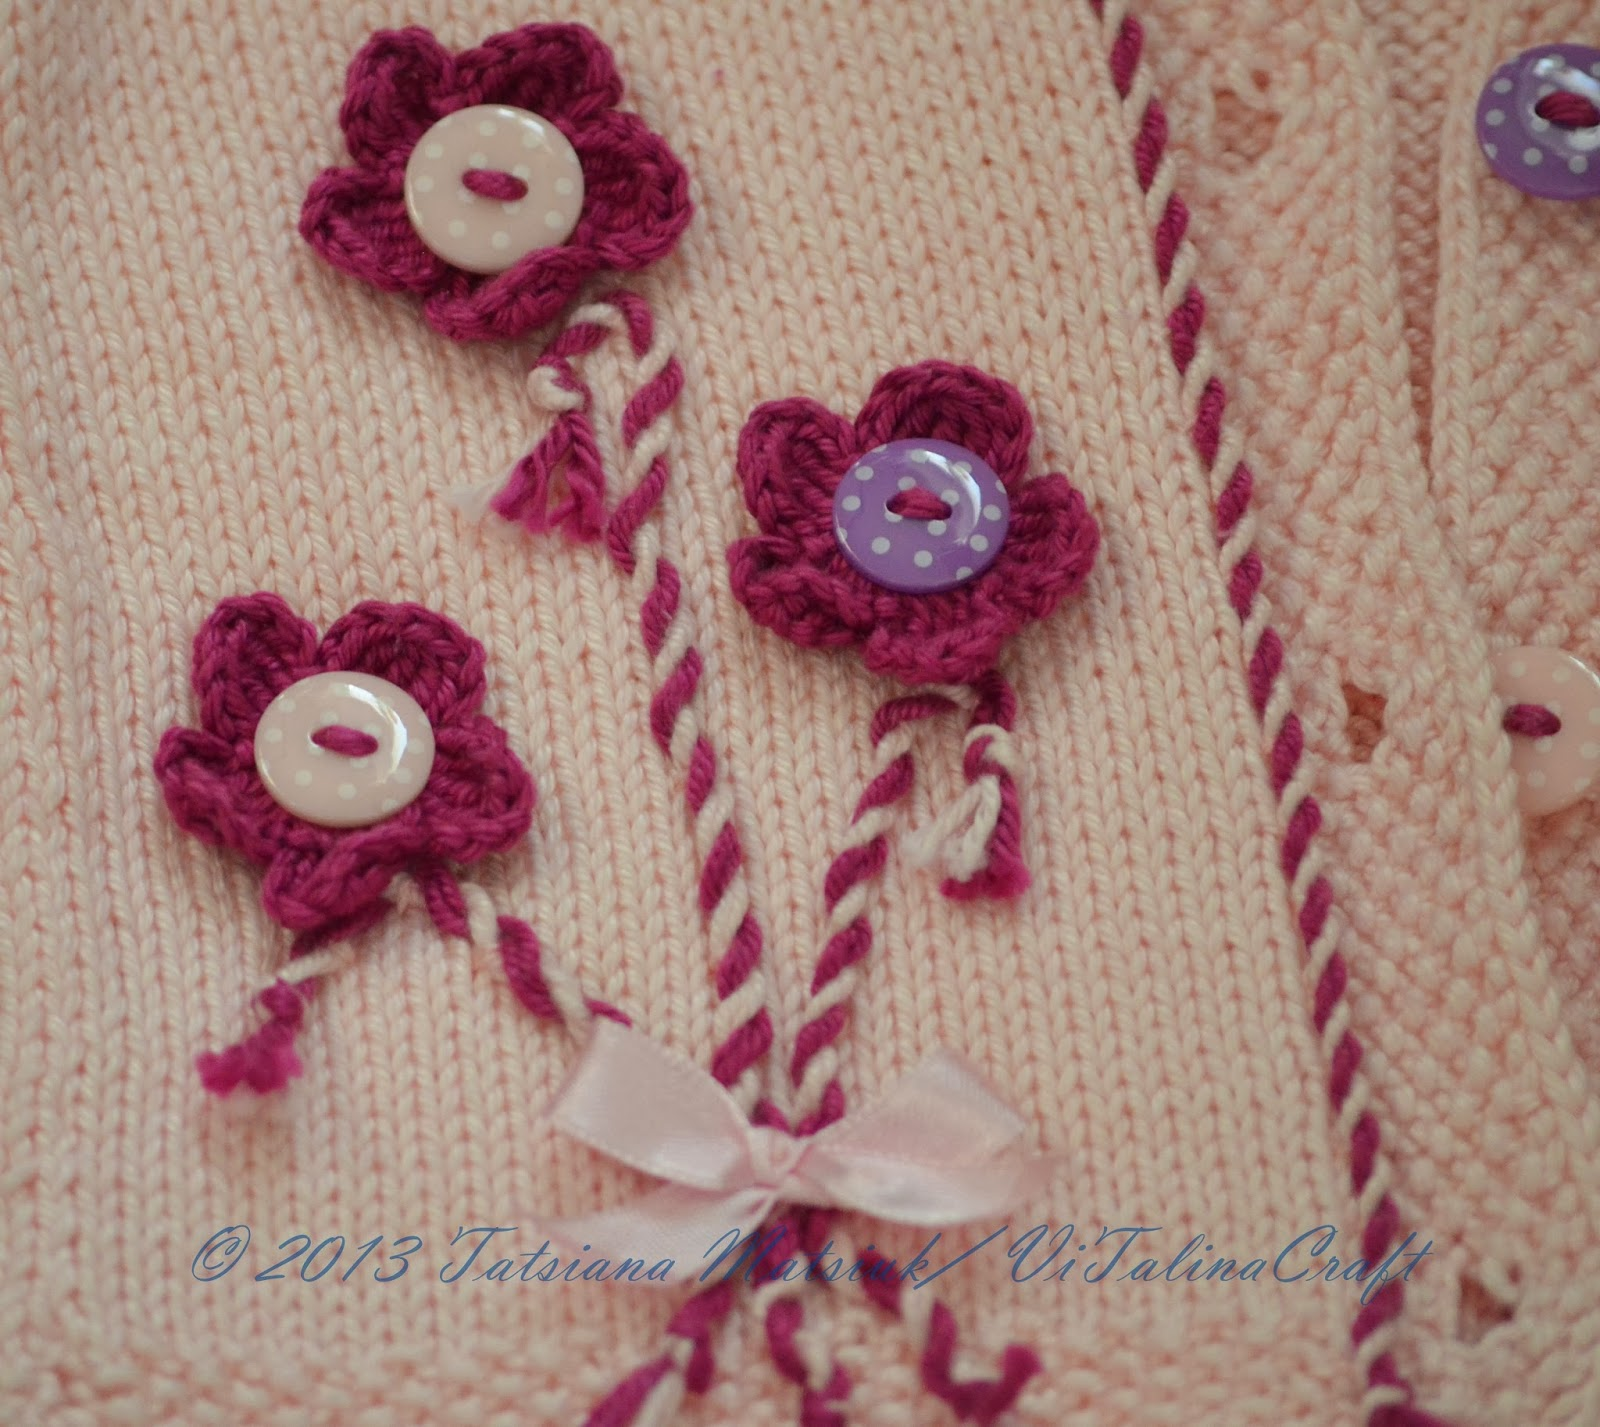 0cc9e880faf9 new list 7e398 f9d5e simple baby knitting patterns crochet and knit ...